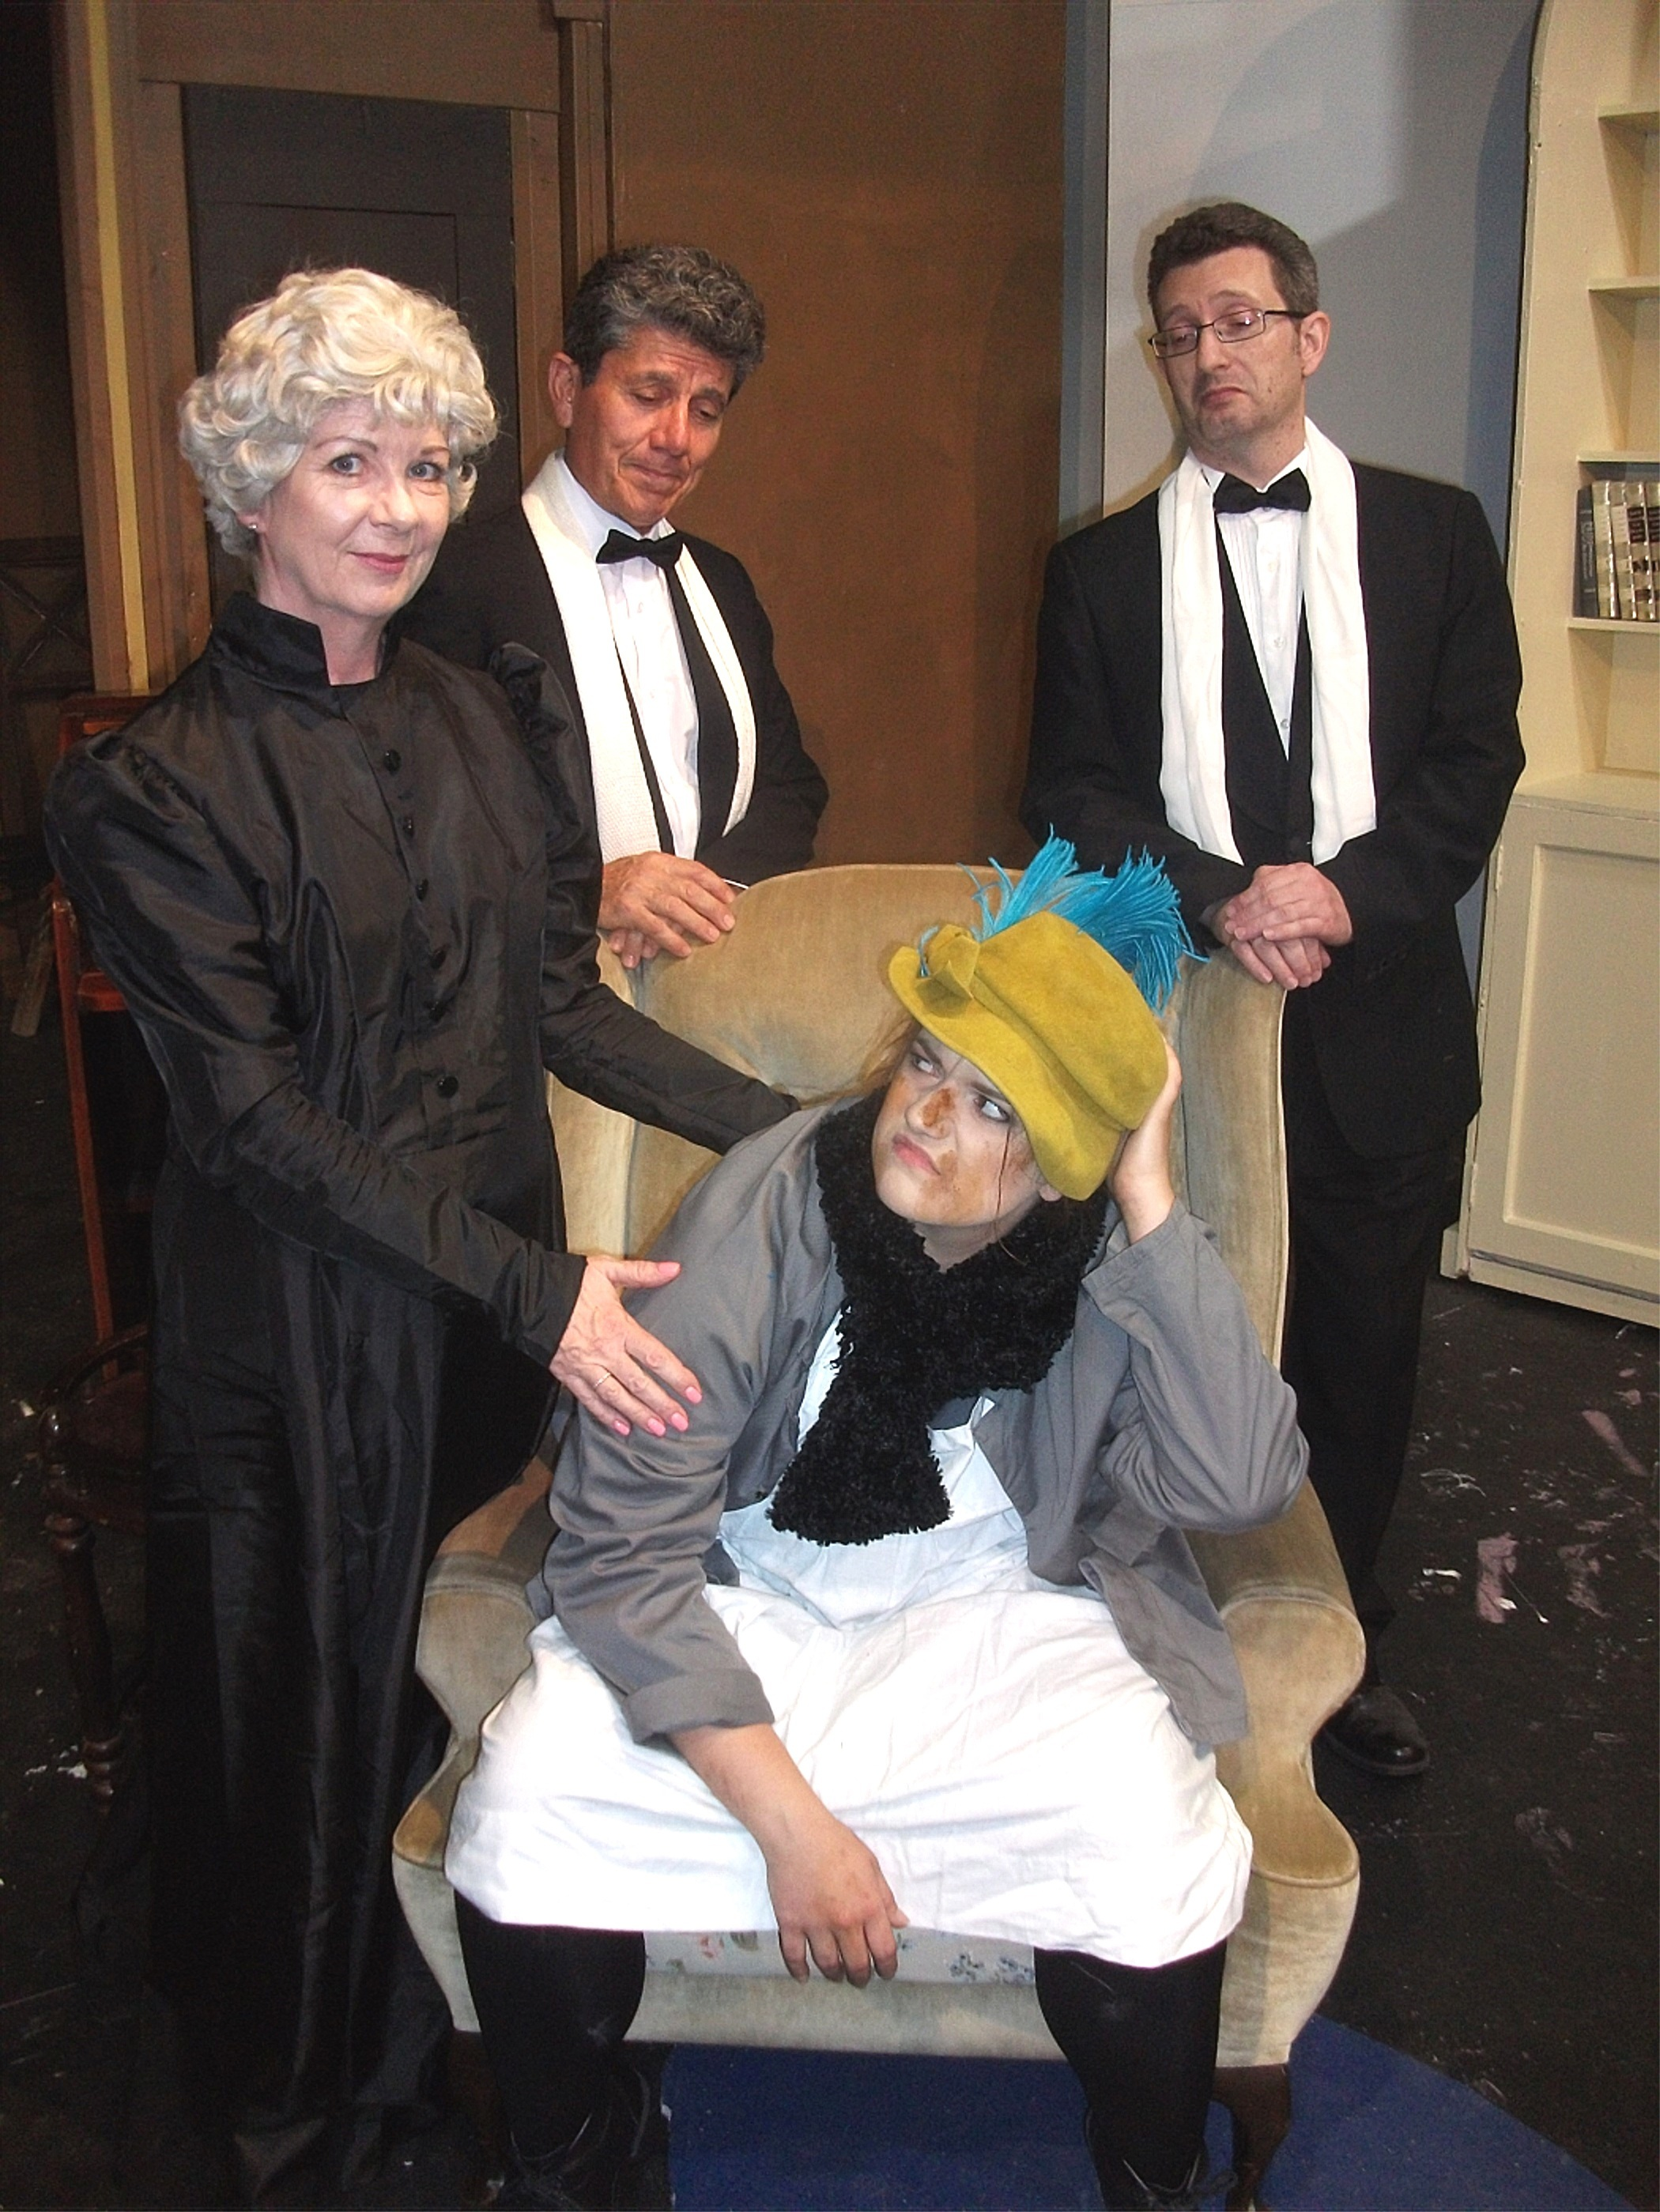 henry higgins bullies eliza doolittle to These are joined by eliza doolittle,  higgins bullies and wheedles eliza into remaining at  henry higgins can determine a londoner's address down to the.